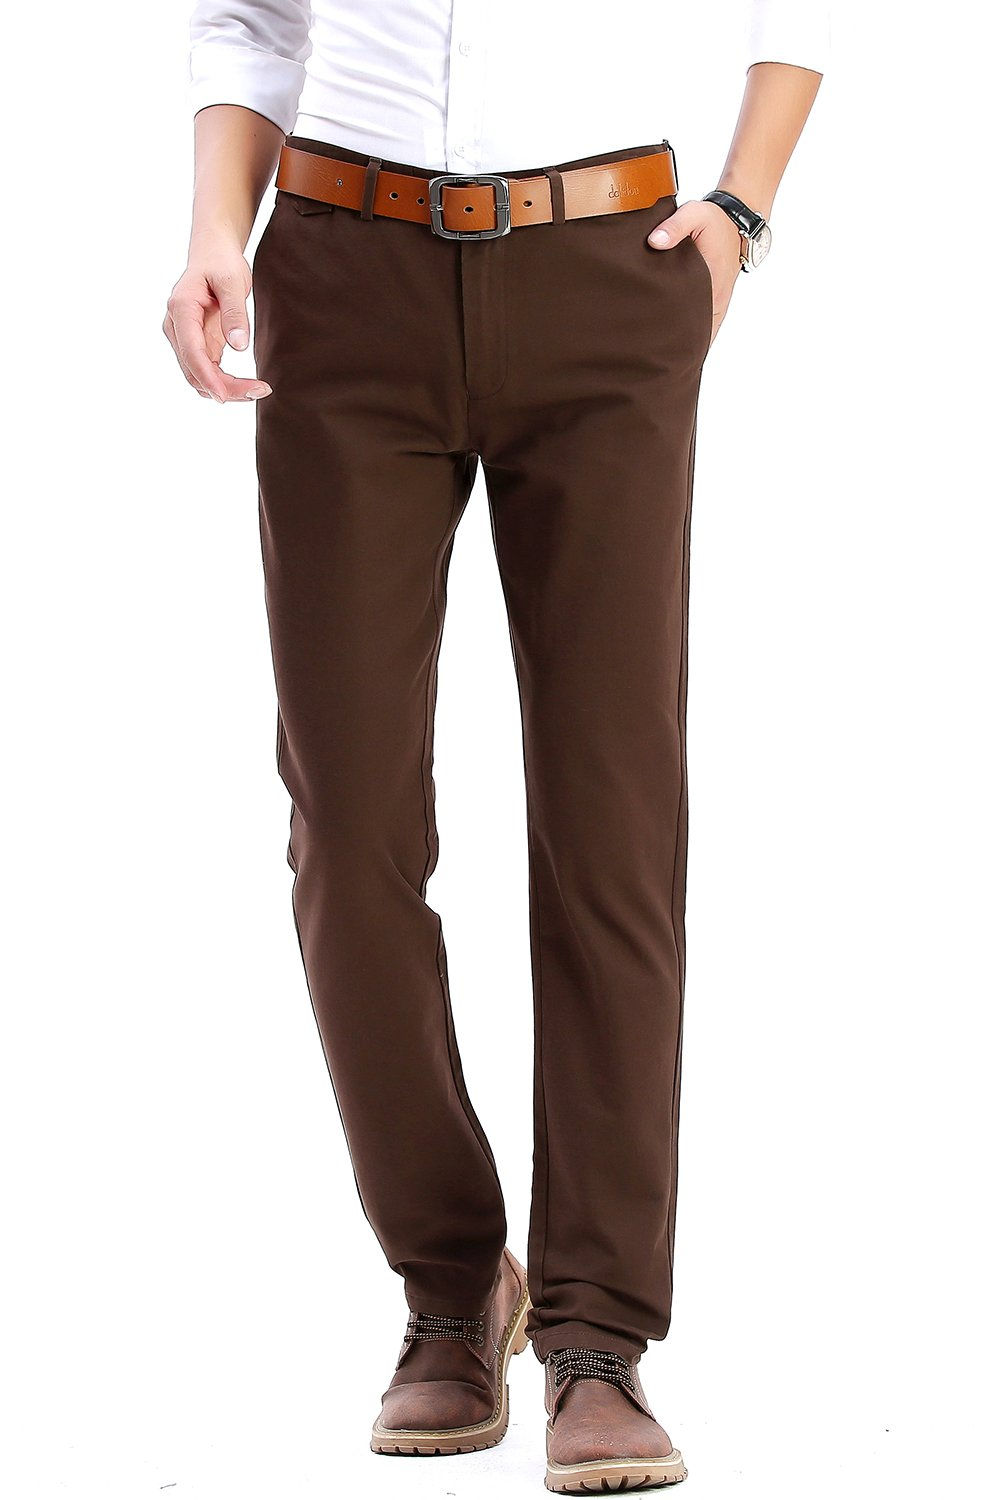 INFLATION Men's Stretchy Slim Fit Casual Pants,100% Cotton Flat Front Trousers Dress Pants for Men,Brown Pants Size 33